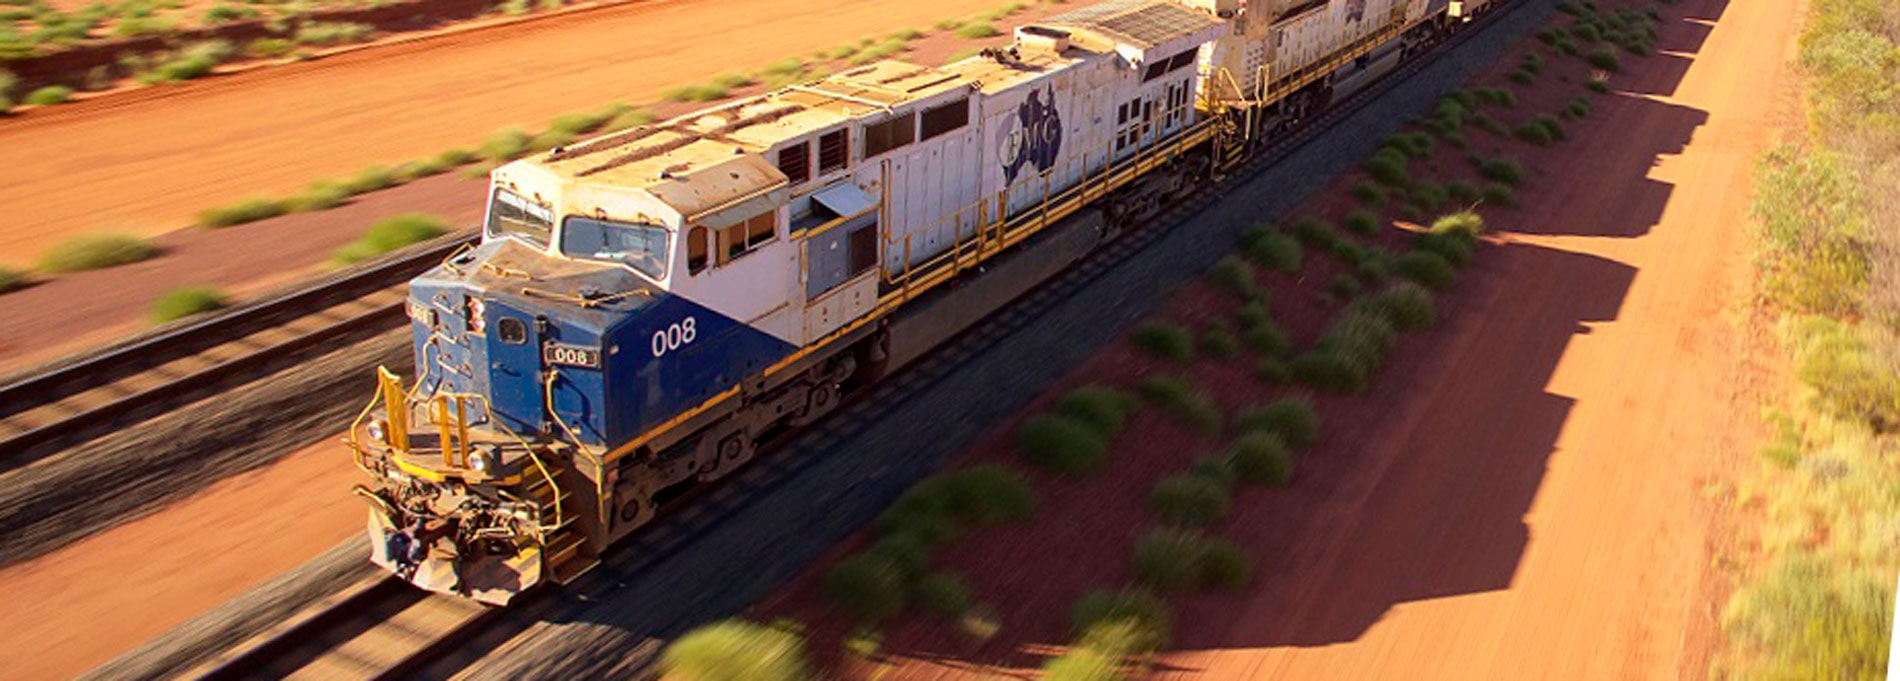 DAMM's TetraFlex® solution connects all of FMG's mining, rail and port operations